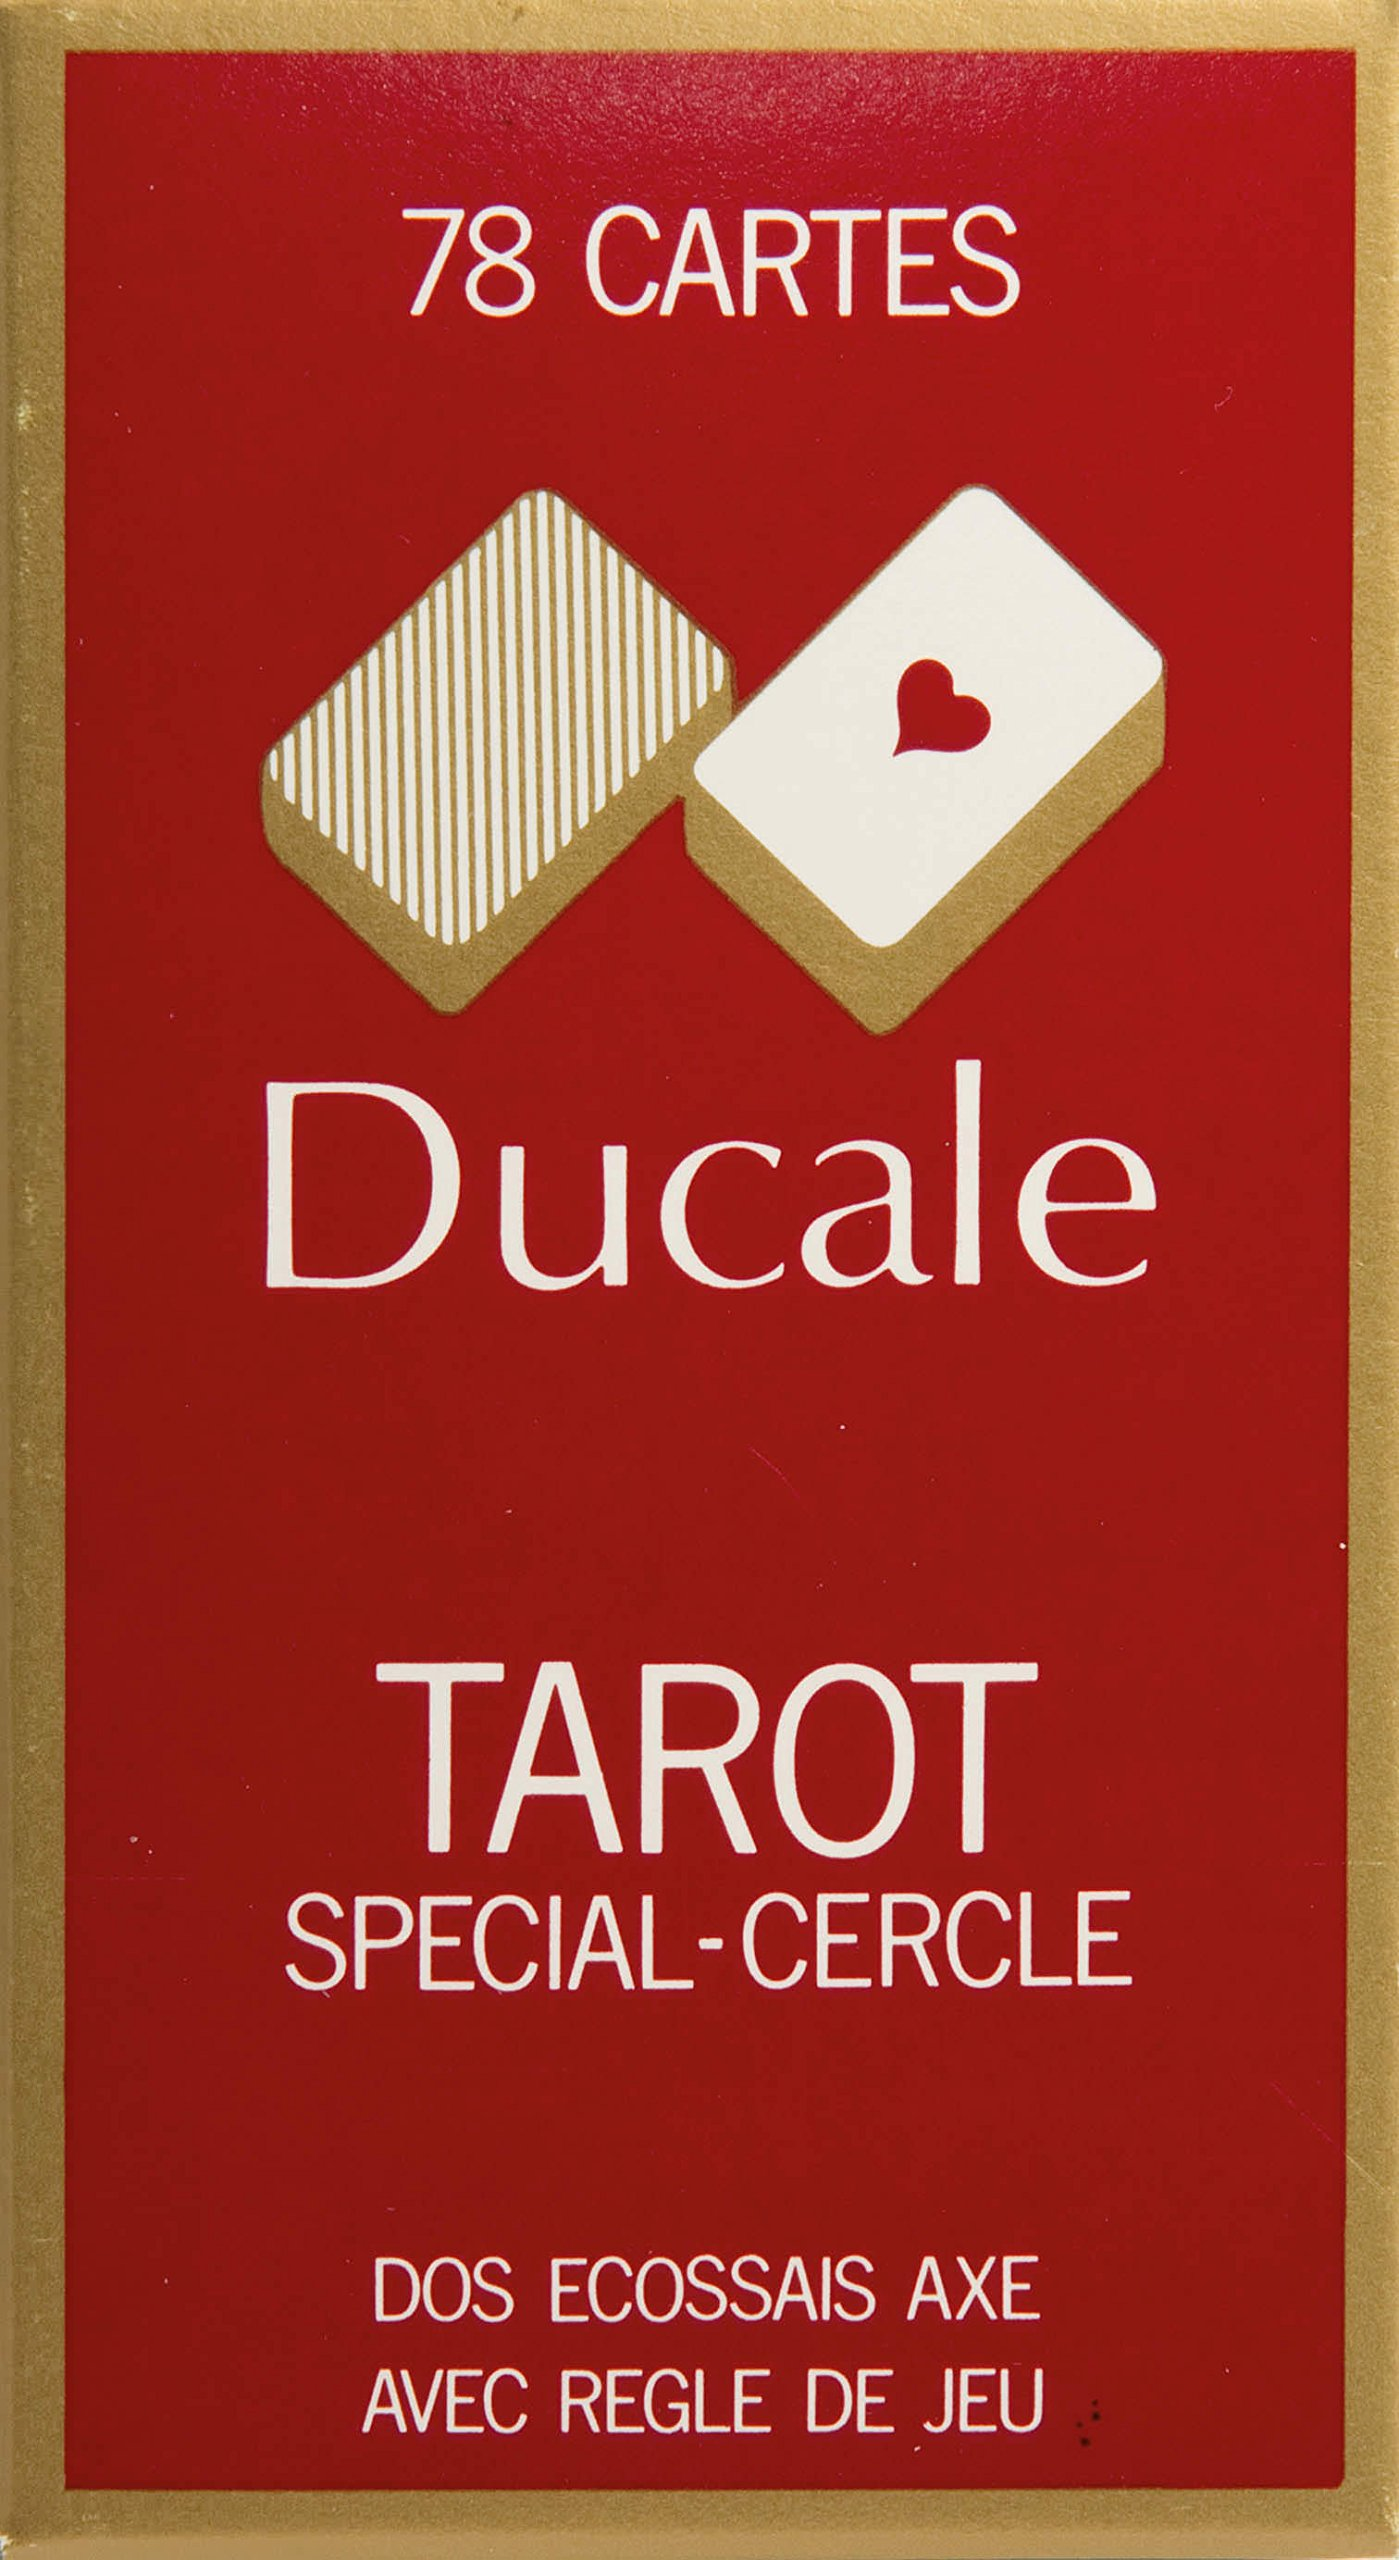 FRANCE CARTES-404680-Card Game-Tarot 78Cards Ducale by FRANCE CARTES (Image #1)